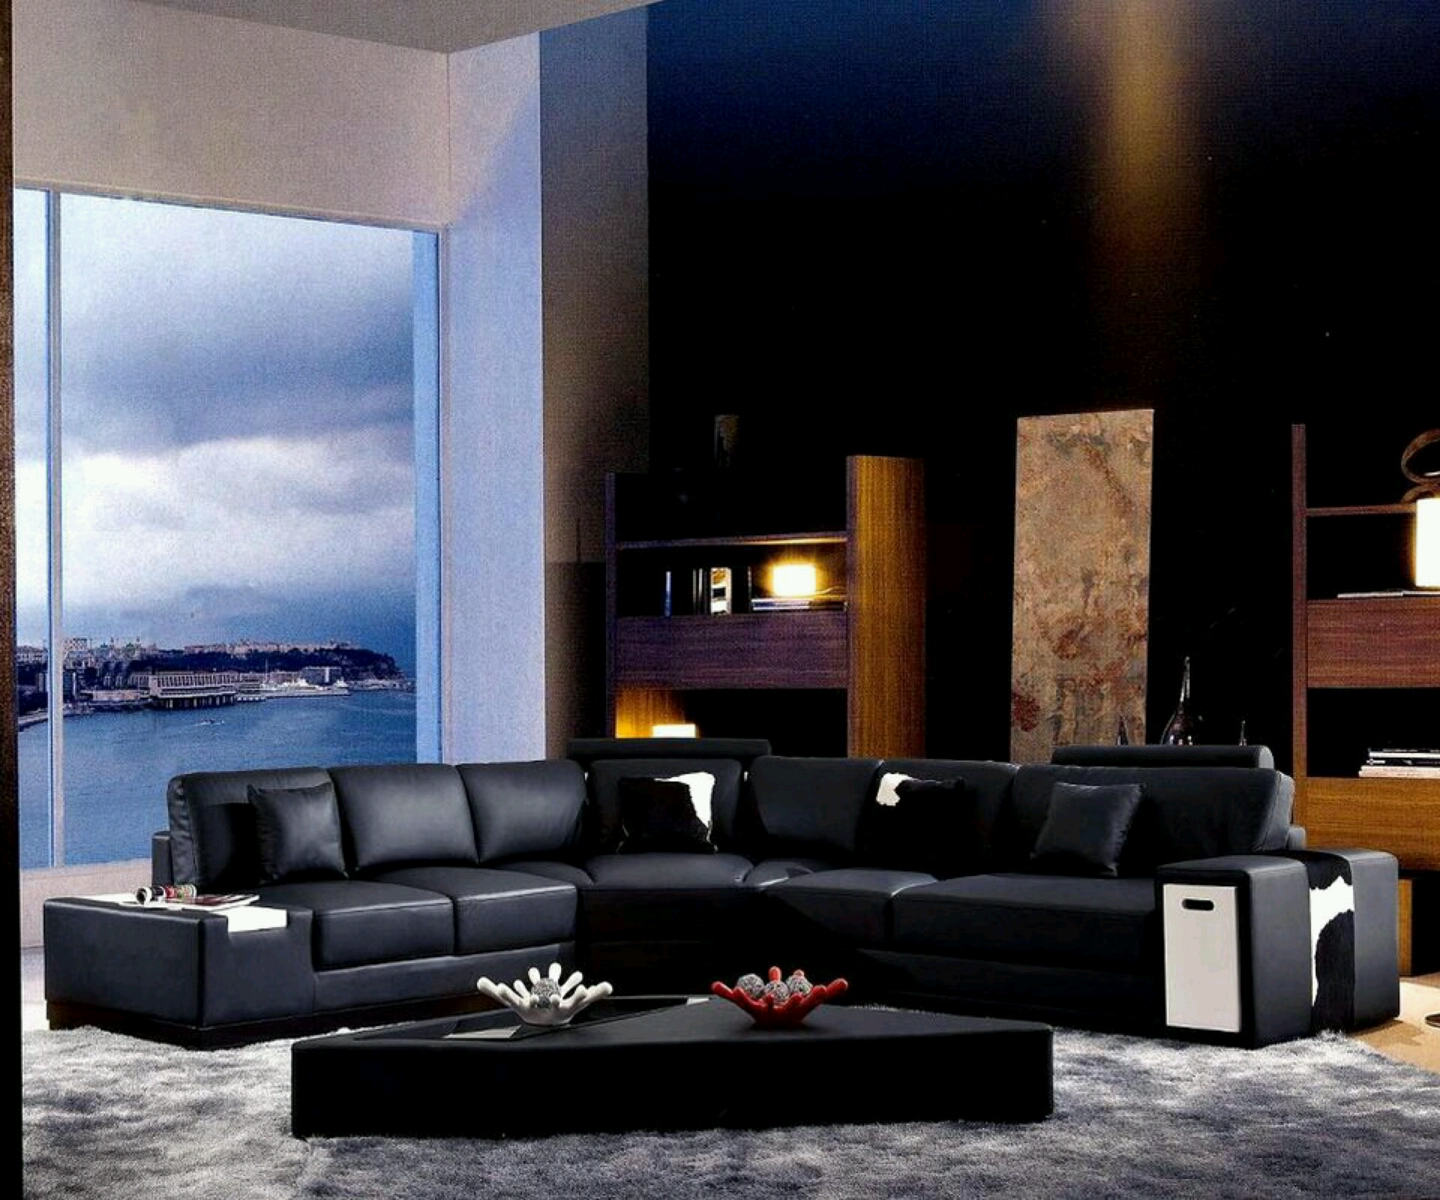 New home designs latest luxury living rooms interior for Modern living room ideas